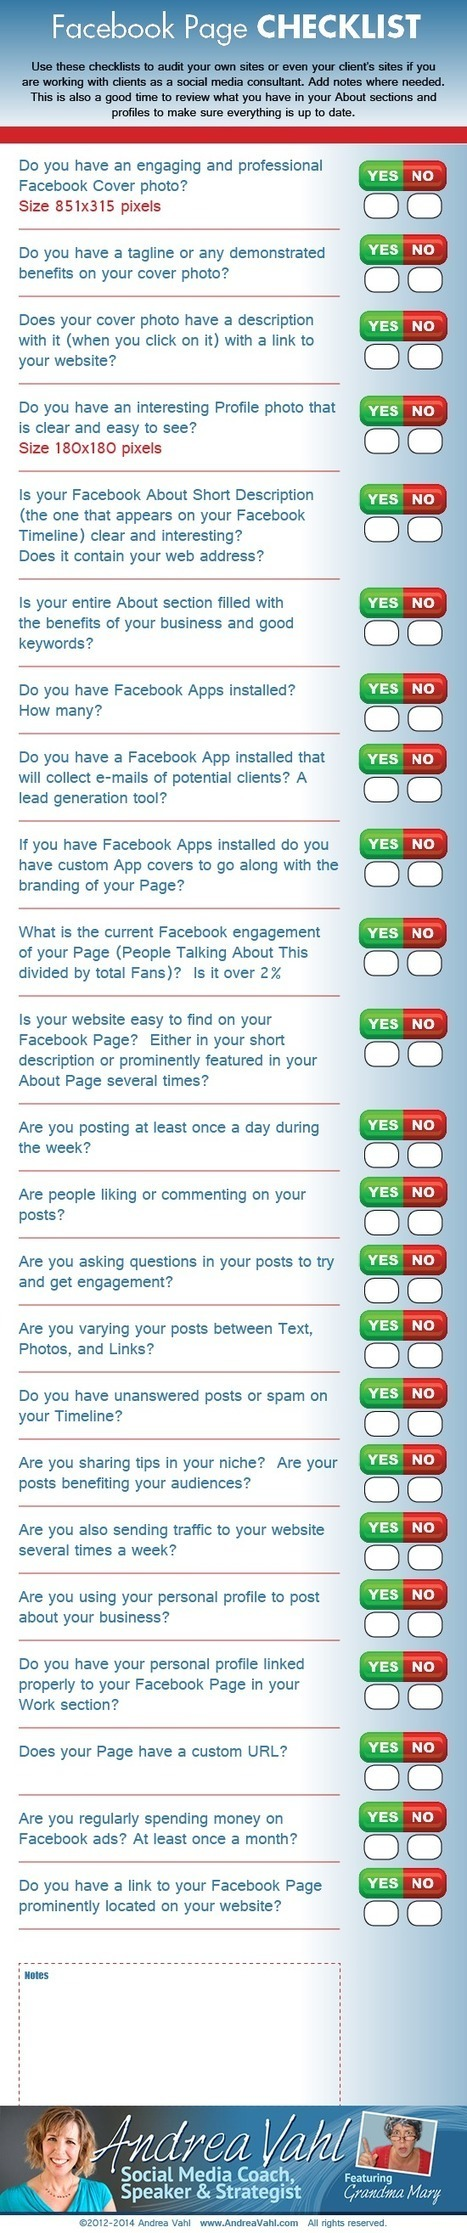 Facebook Page Checklist [Infographic] | Social Media Marketing Superstars | Scoop.it